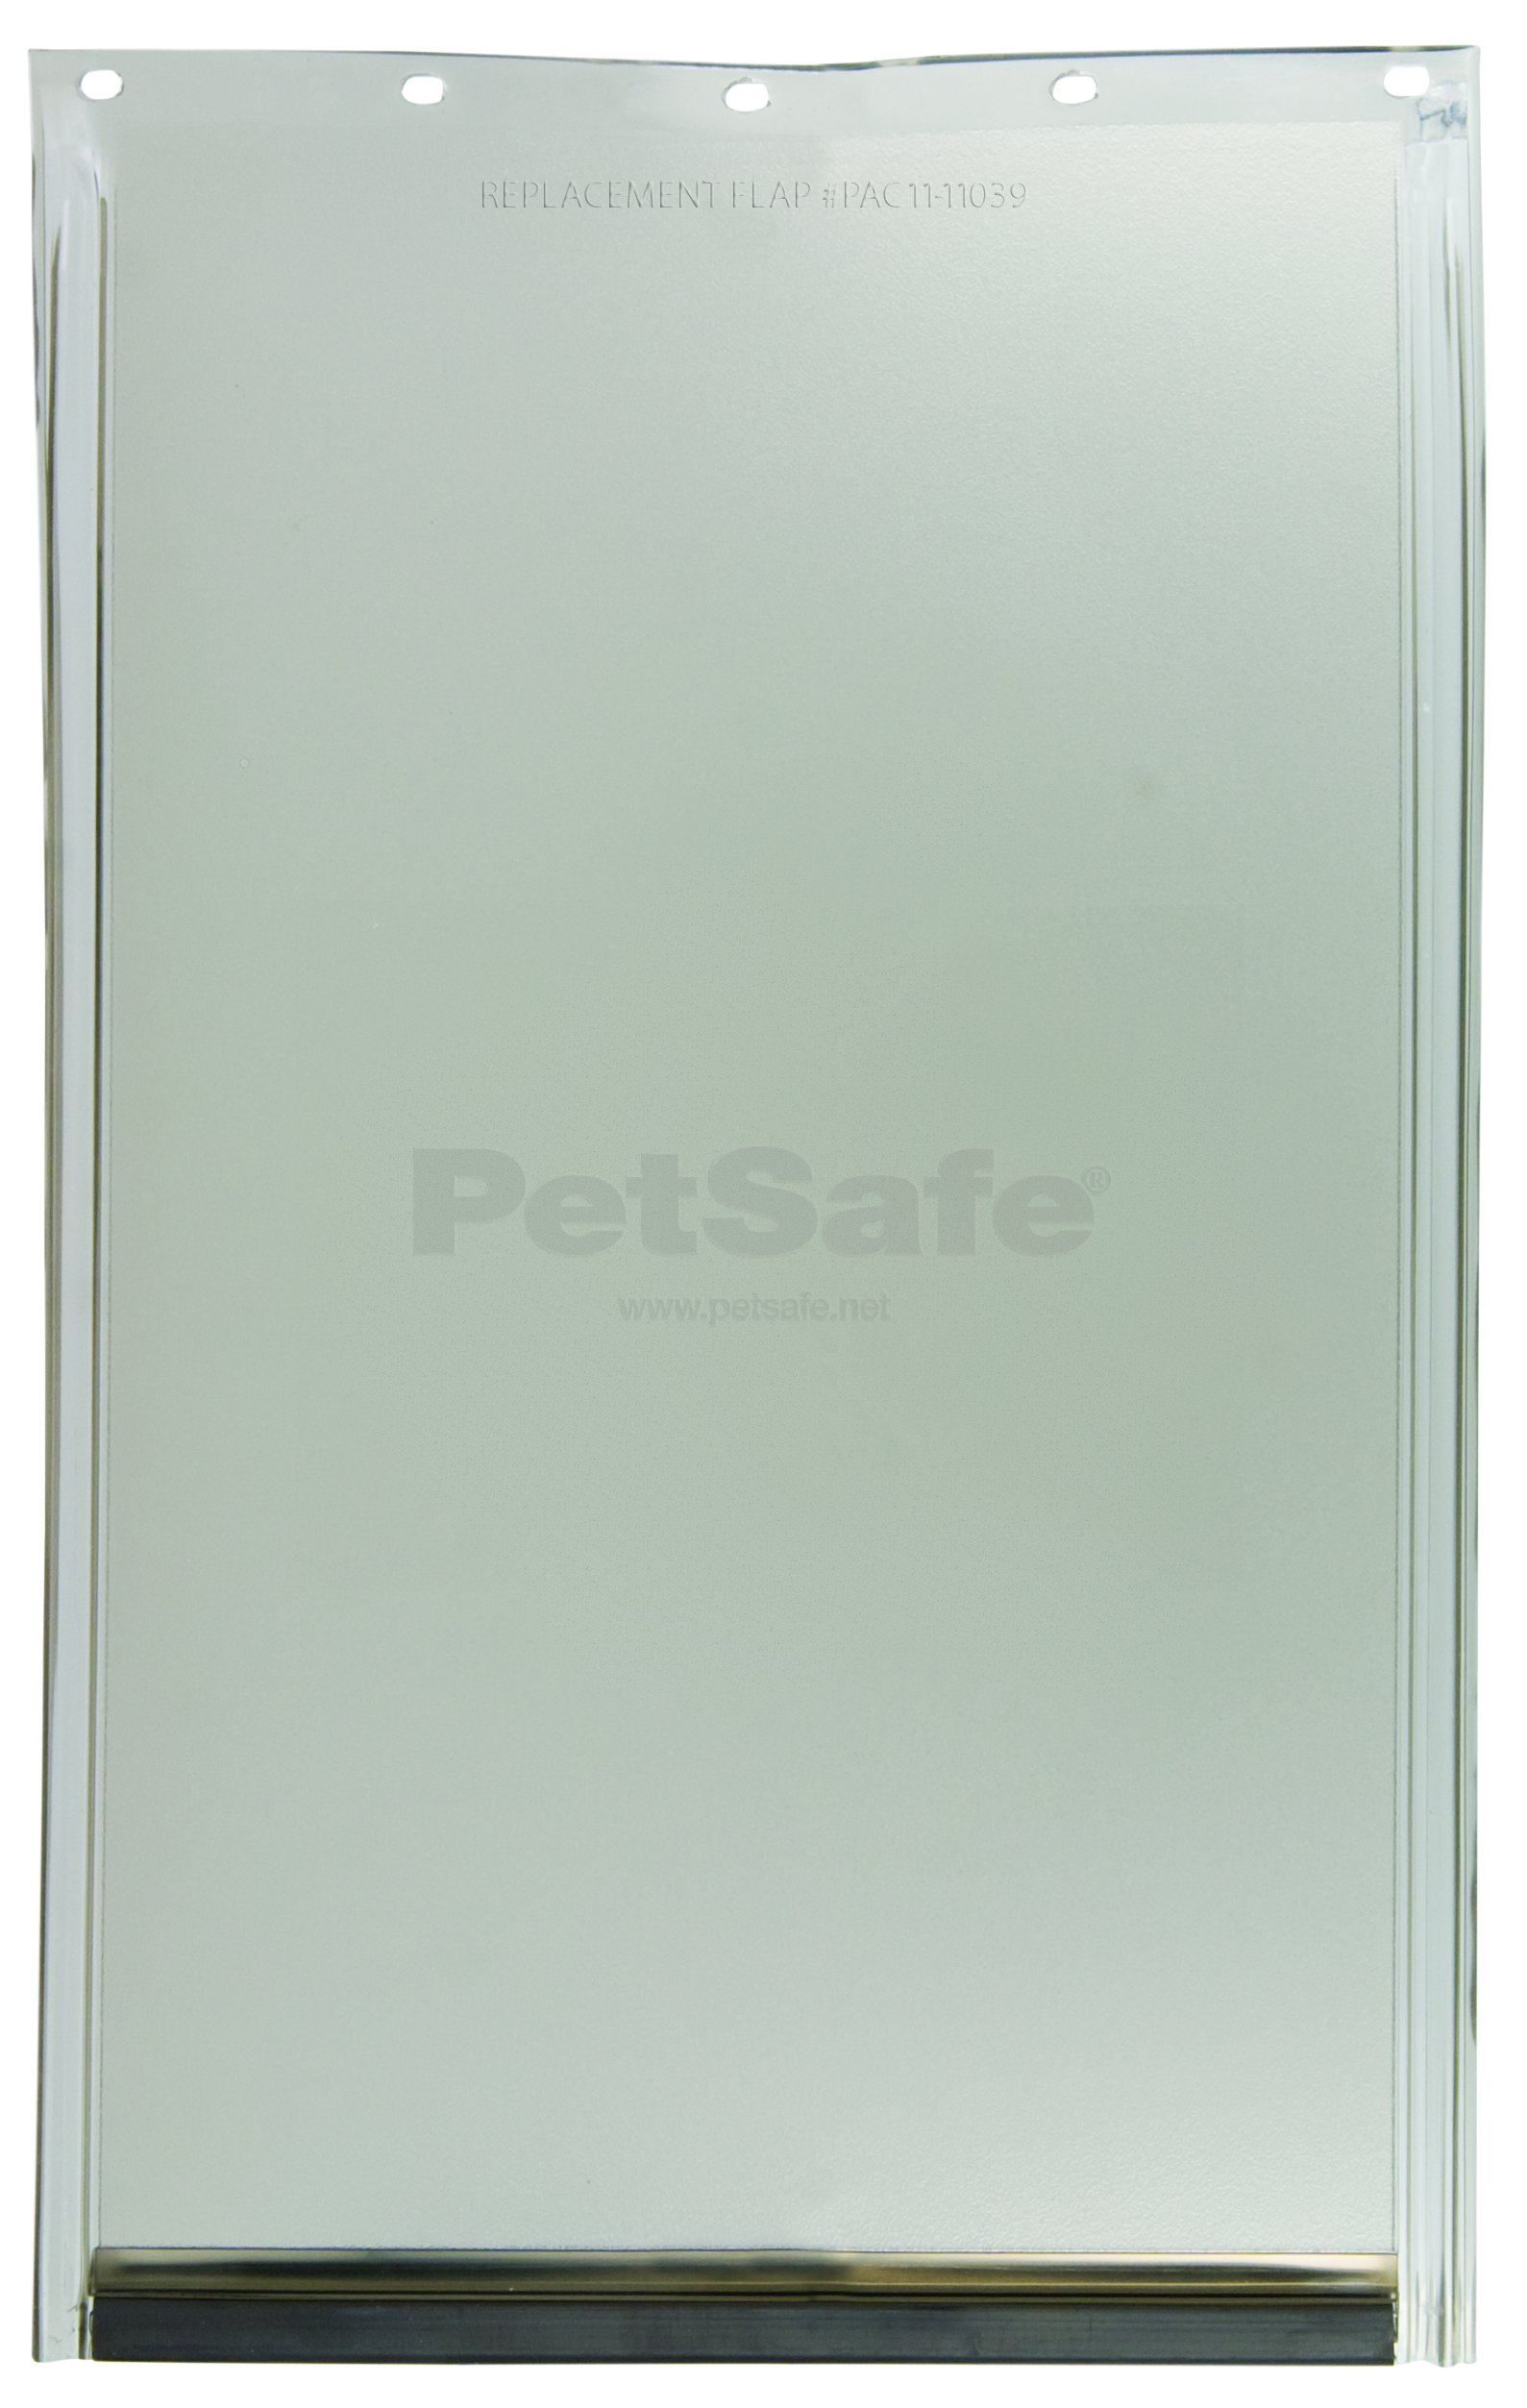 PetSafe Dog and Cat Door Replacement Flap, Large, 10 1/8'' x 16 7/8'', PAC11-11039, Tinted Vinyl, Magnetic by PetSafe